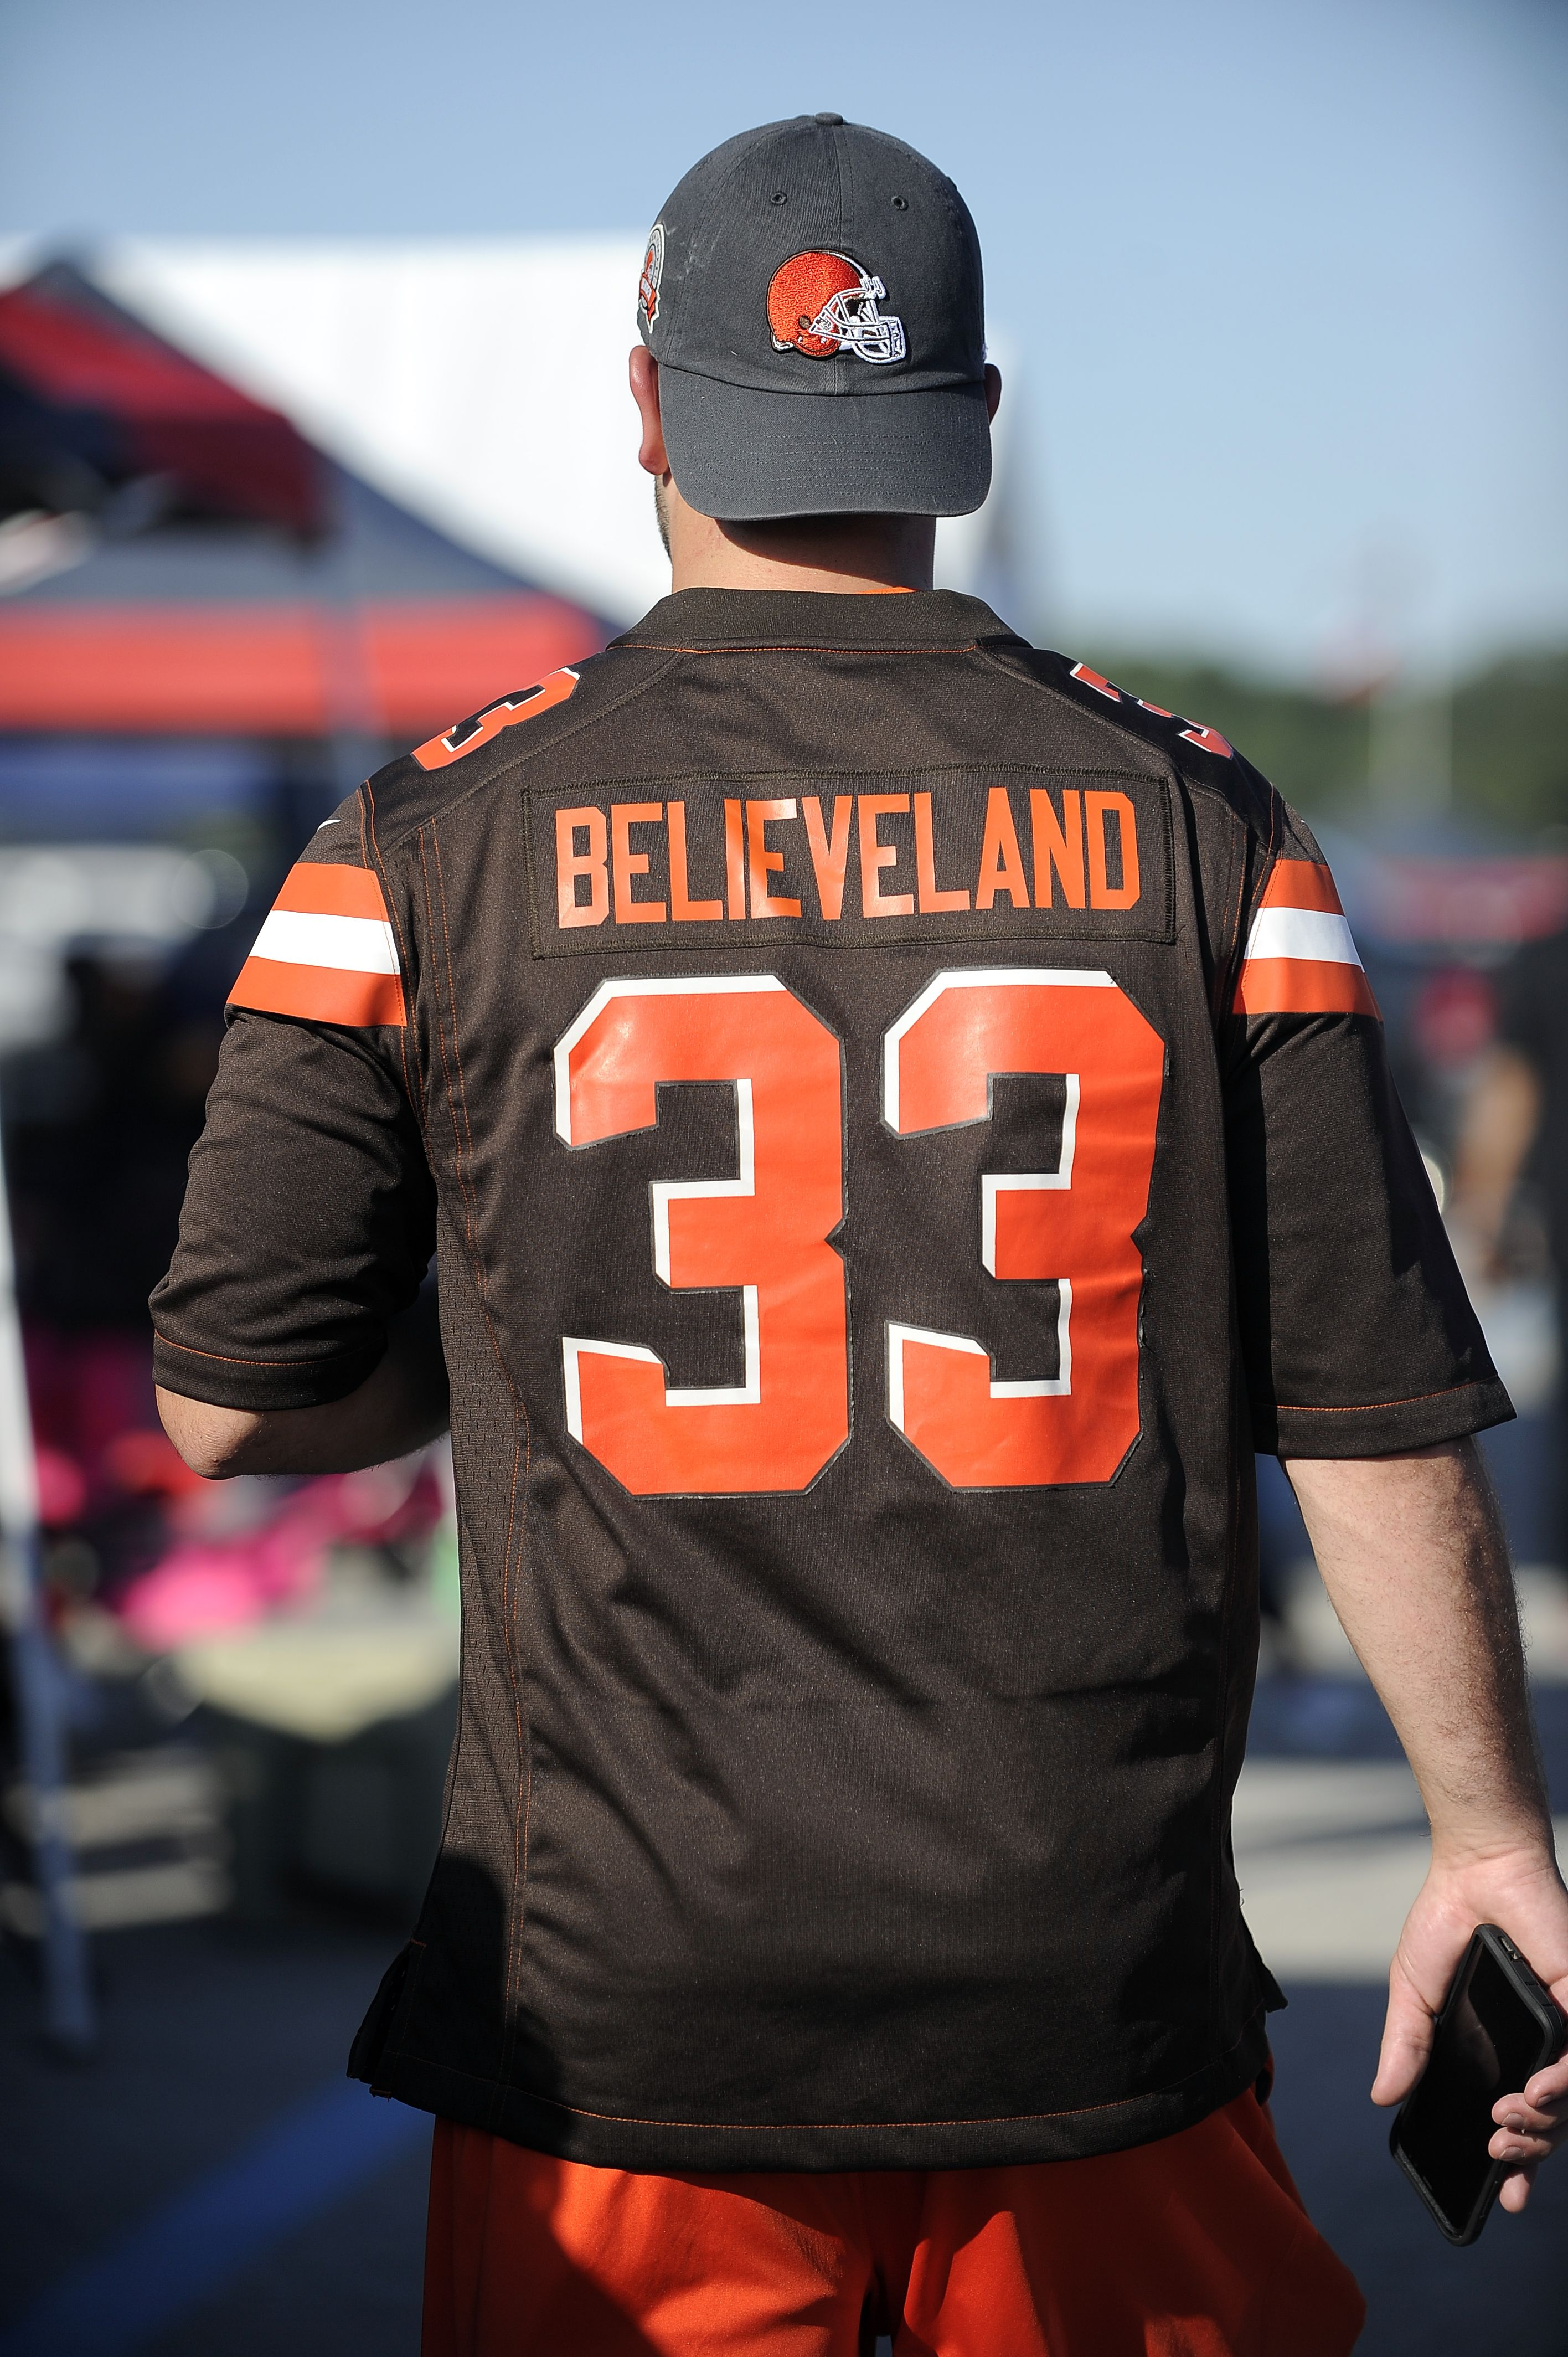 Browns fans know how to dress in NFLFanStyle for gameday